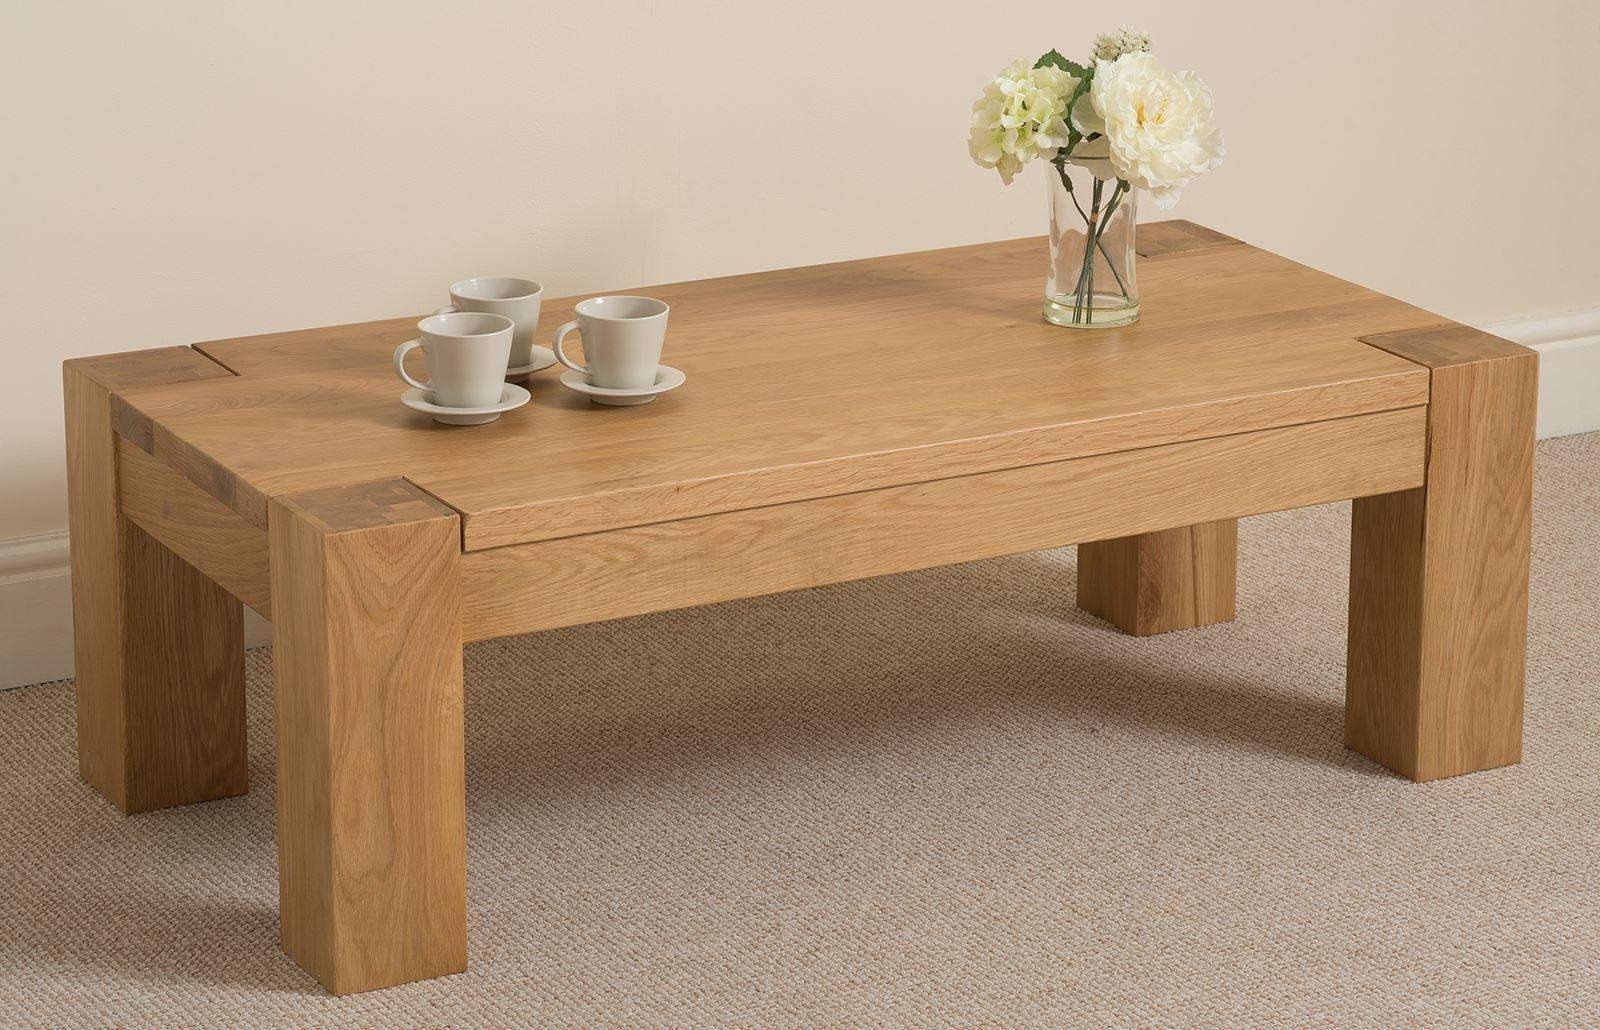 Recent Solid Oak Beam Coffee Table Pertaining To Coffee Table : Chunky 4 Leg Coffee Table With Shelf Rustic Oak In (View 18 of 20)